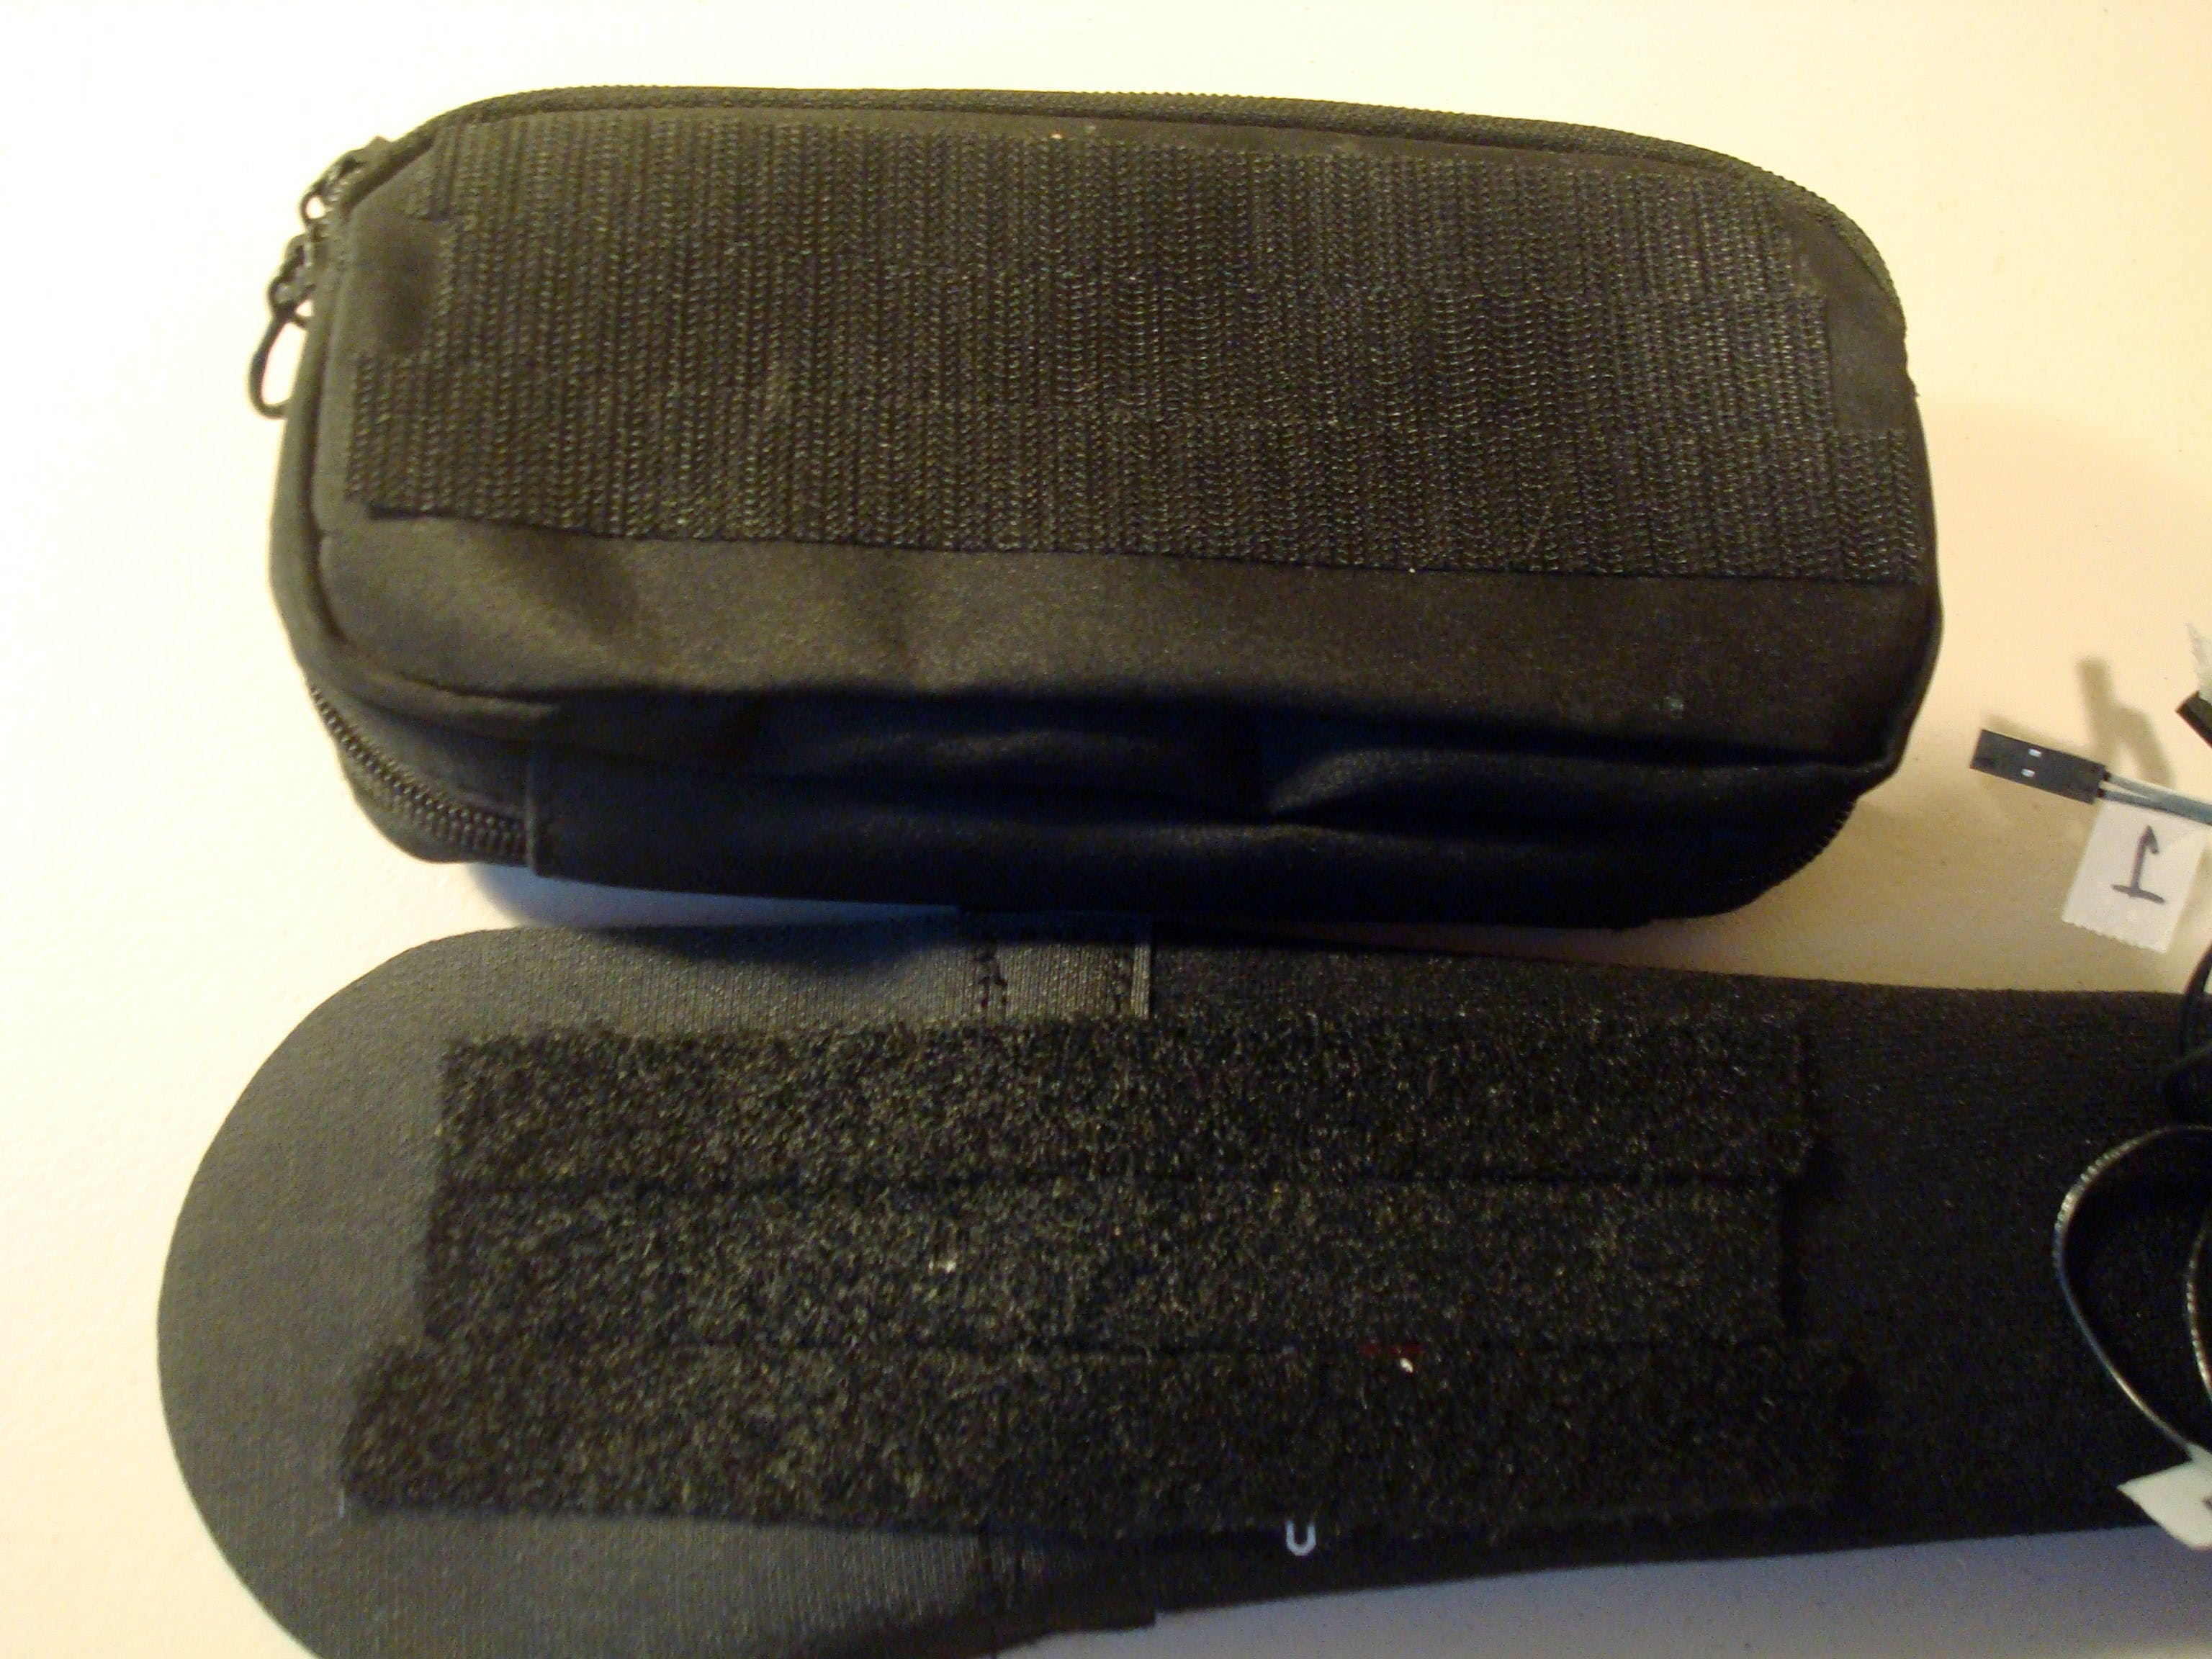 Attach one side of the velcro strips to the back of the case and the other half to the belt, centering the strips across where the belt meets the velcro adjustment strap.